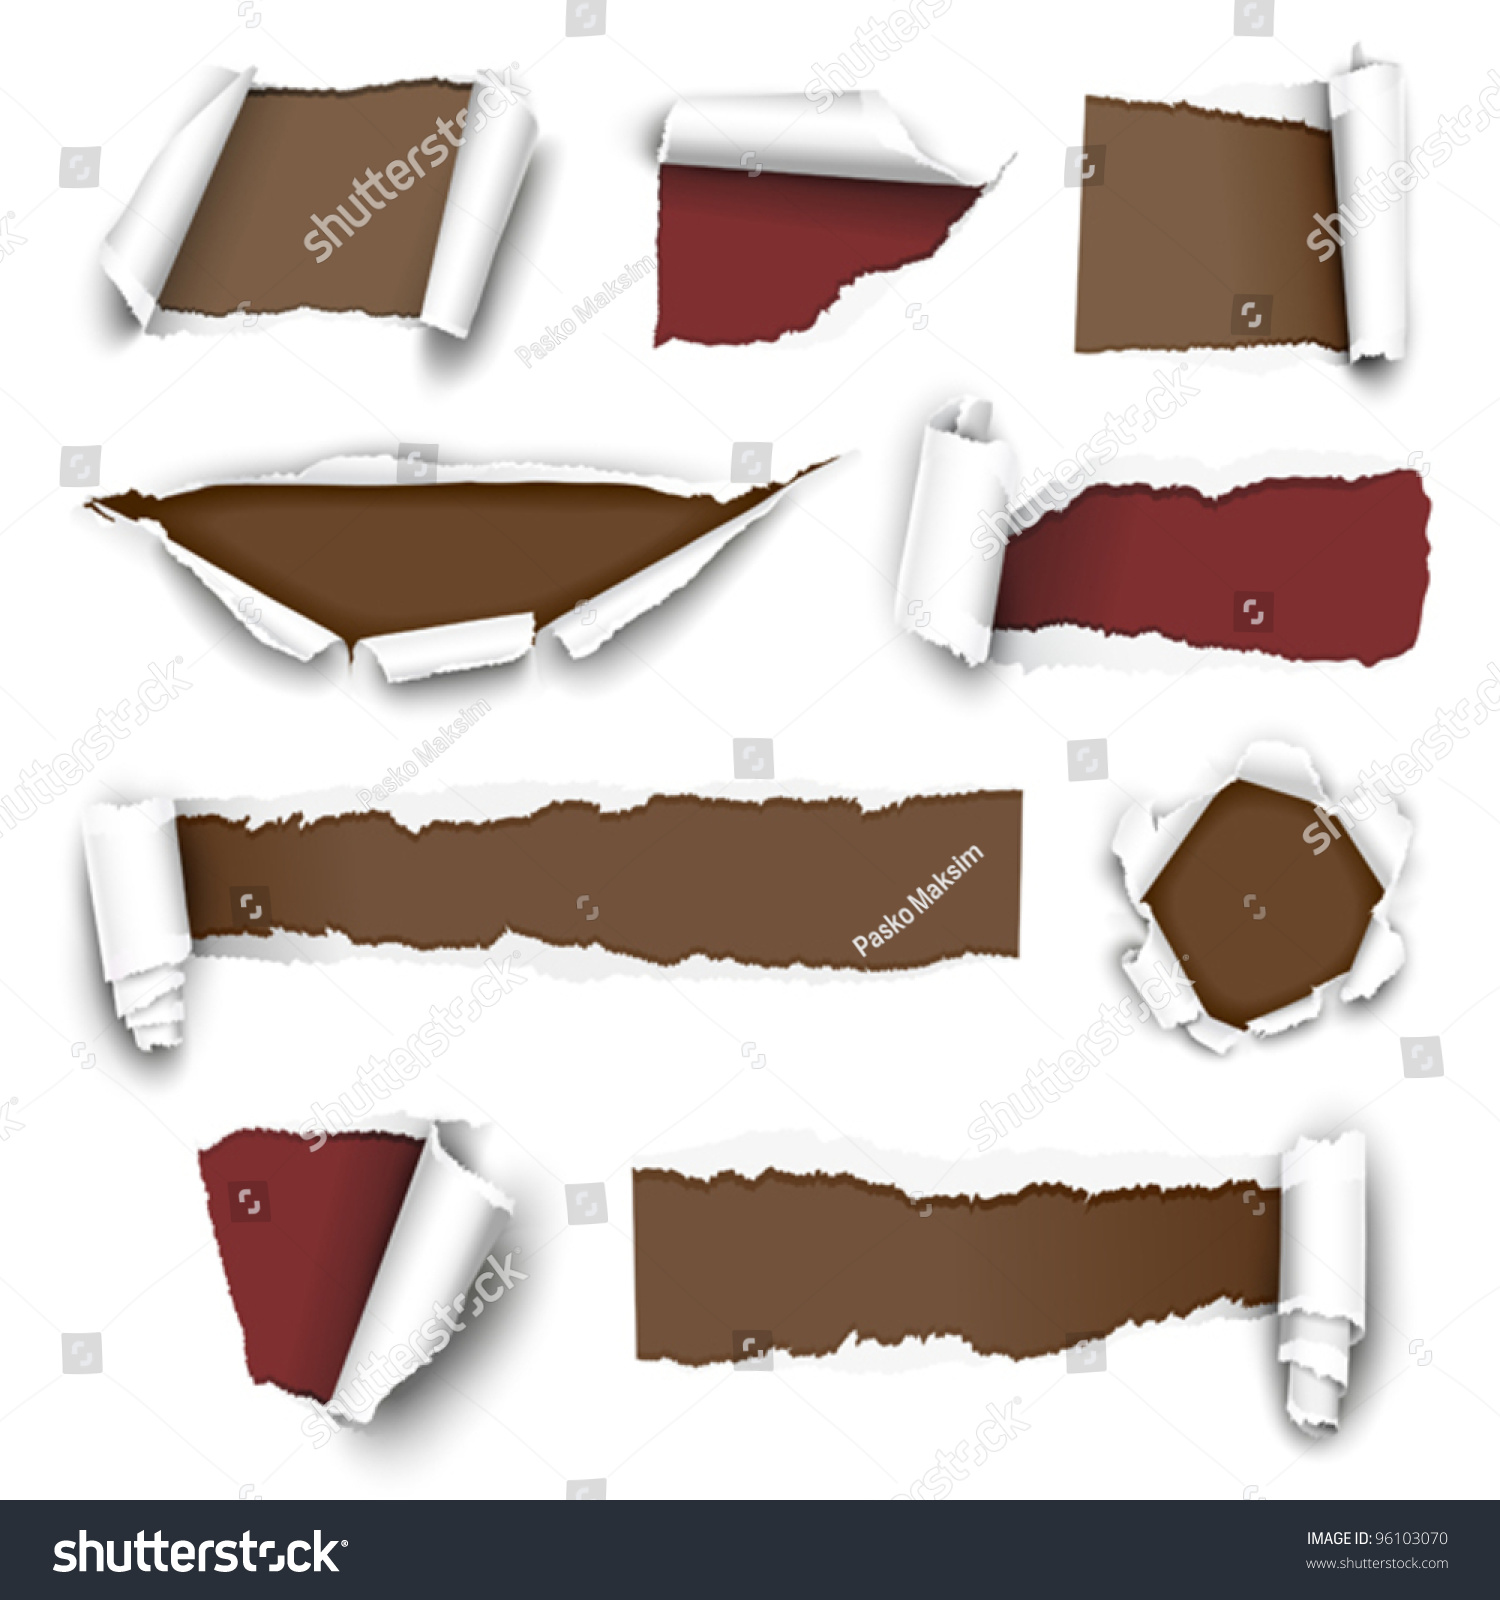 torn paper vector Torn paper vector choose from thousands of free vectors, clip art designs, icons,  and illustrations created by artists worldwide.